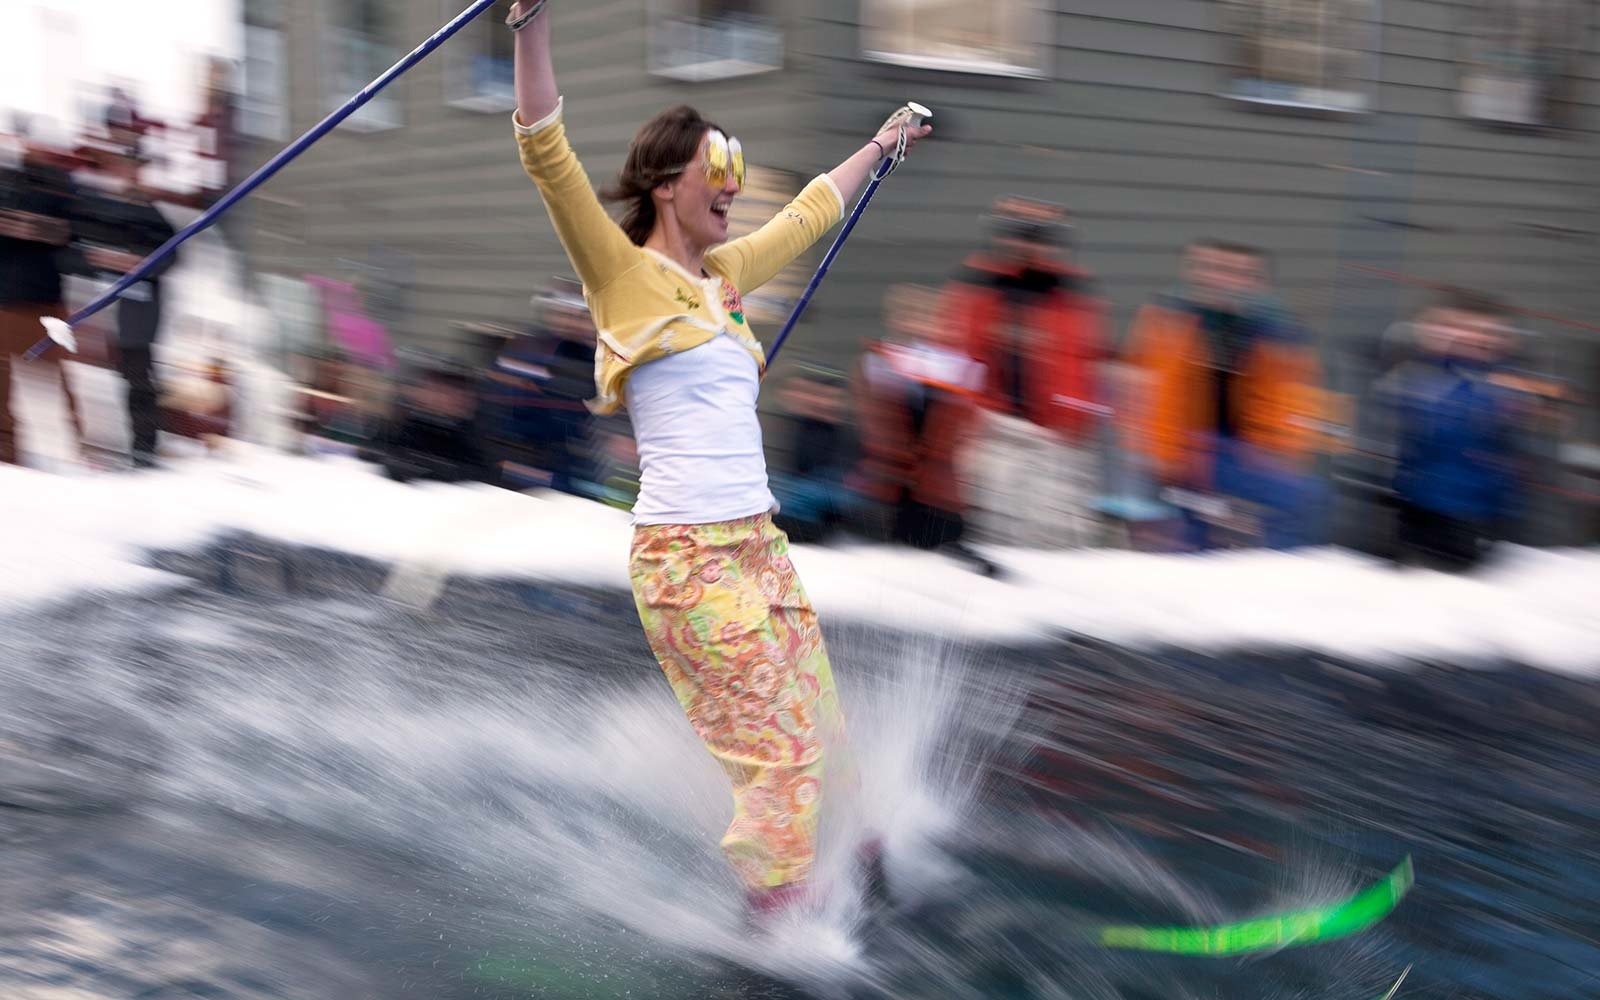 Join a pond skimming competition